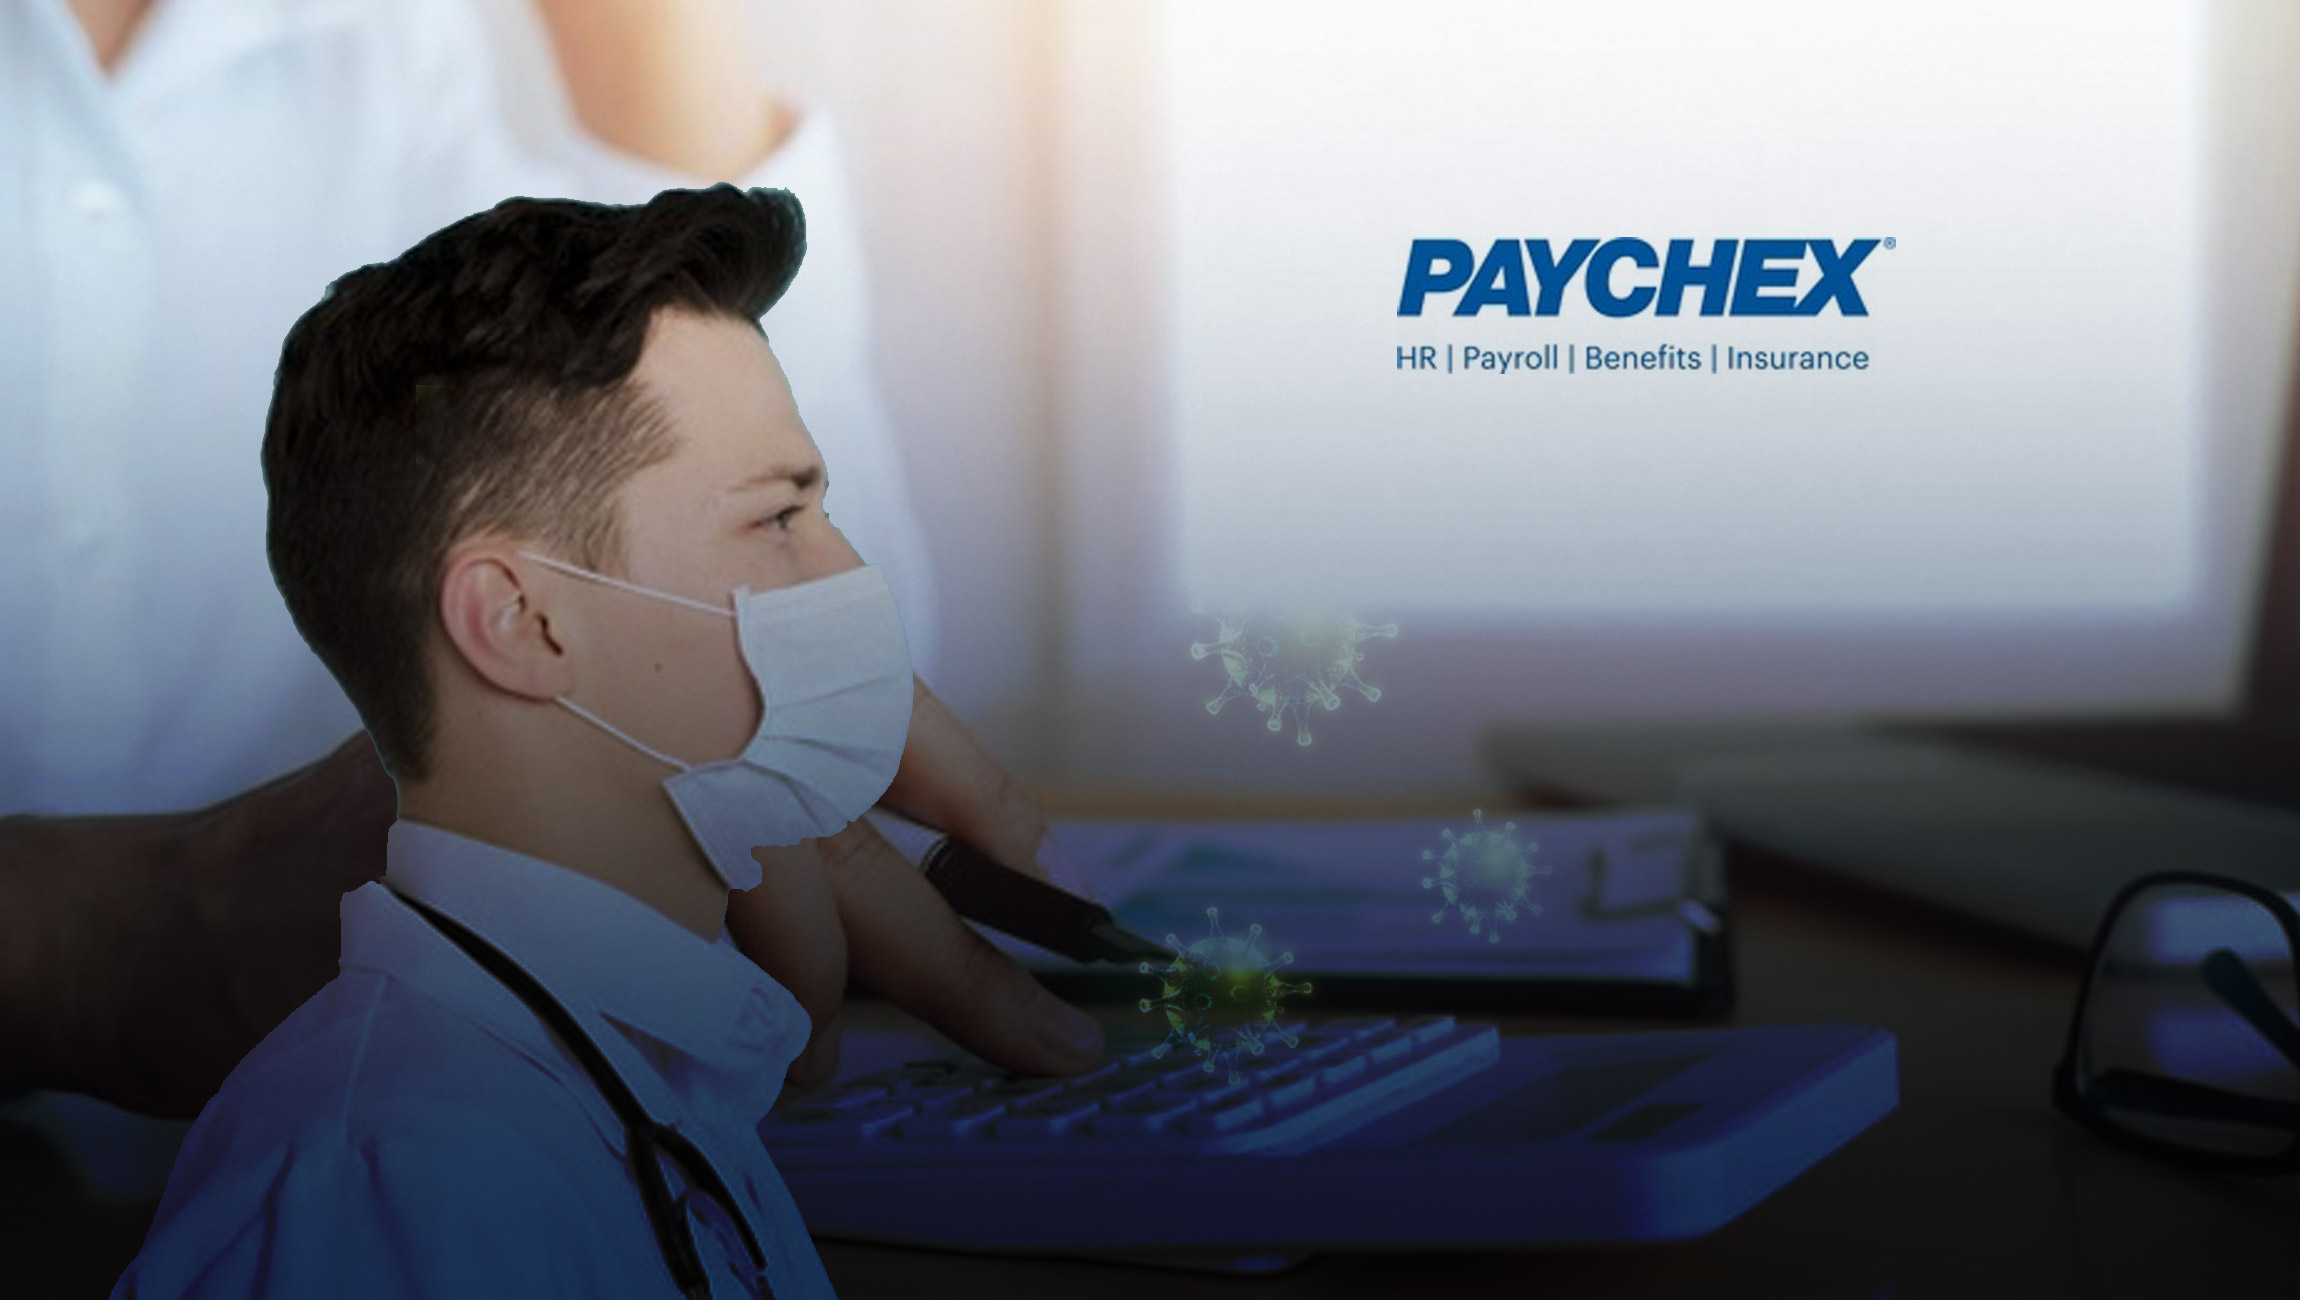 Paychex Responds to Businesses 24/7 Amid COVID-19 Crisis